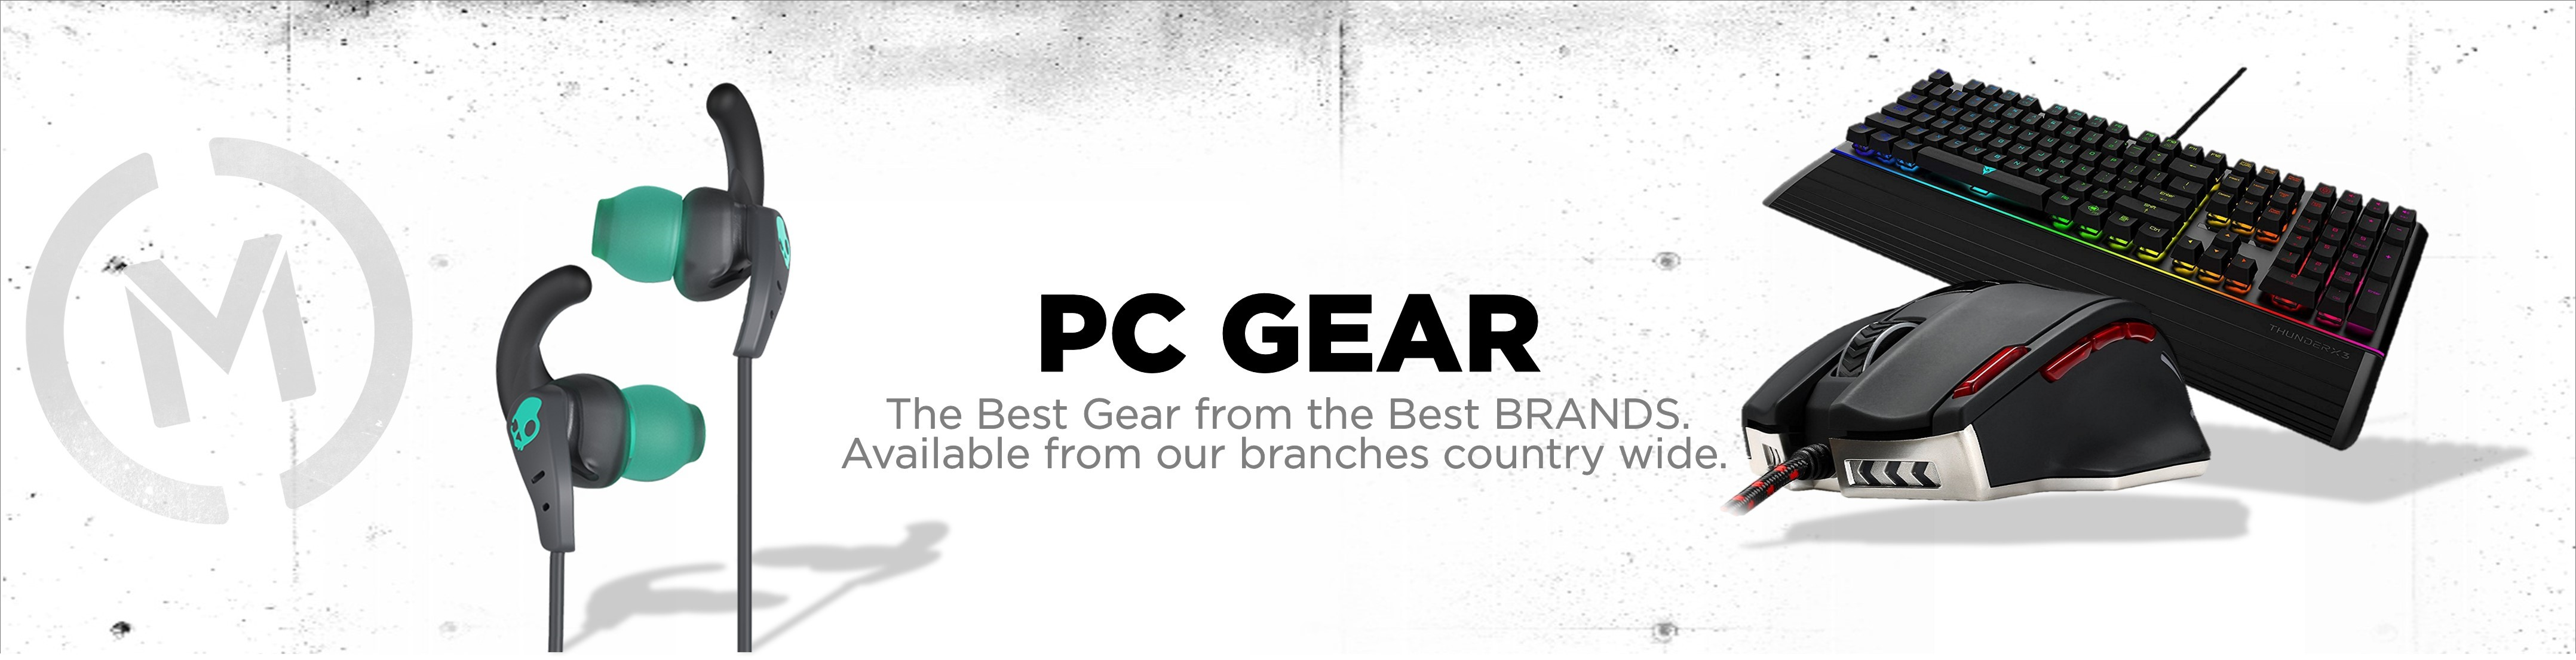 Matrix PC Gear Banner